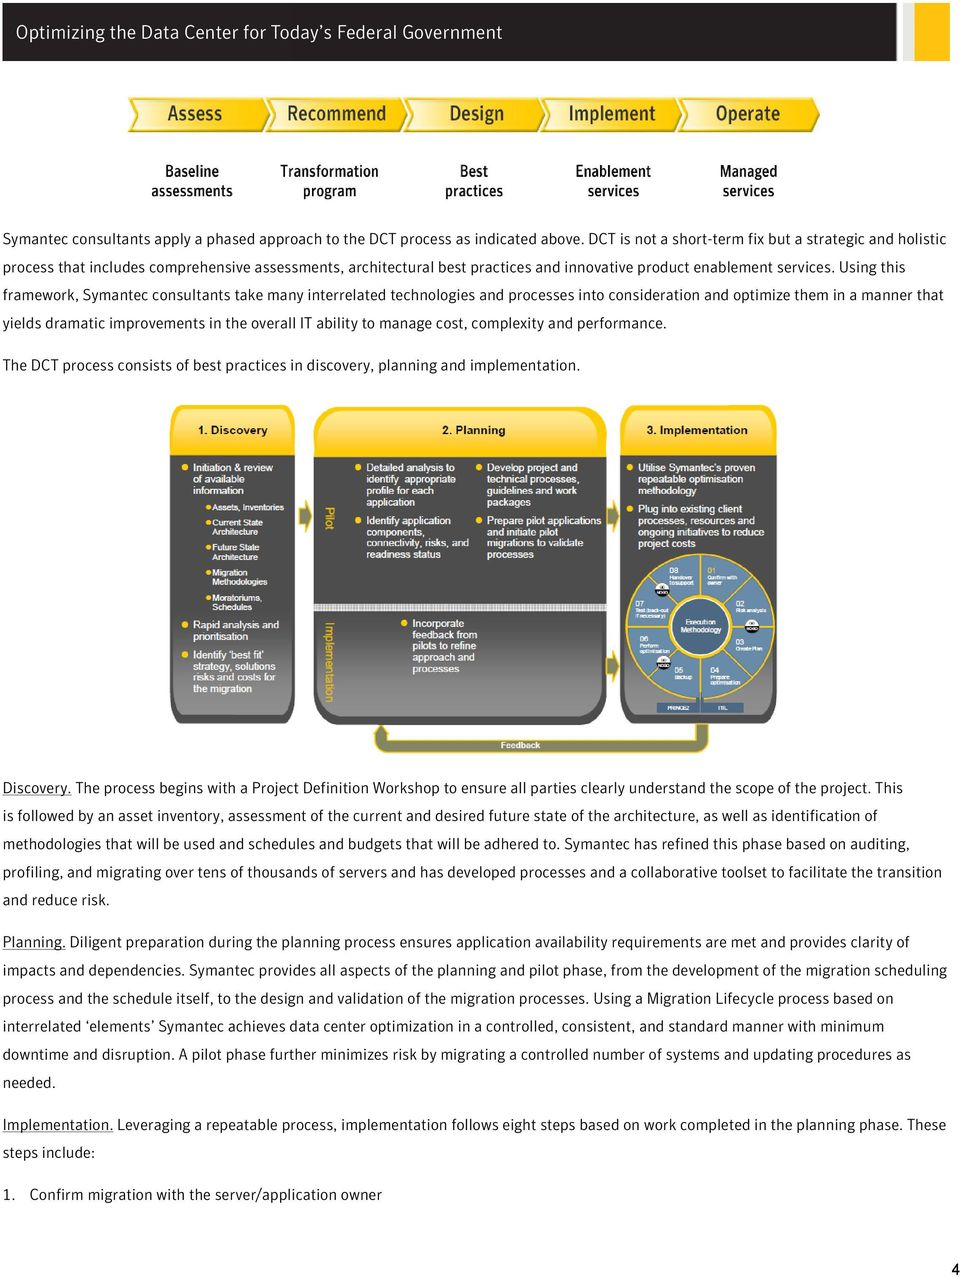 Using this framework, Symantec consultants take many interrelated technologies and processes into consideration and optimize them in a manner that yields dramatic improvements in the overall IT